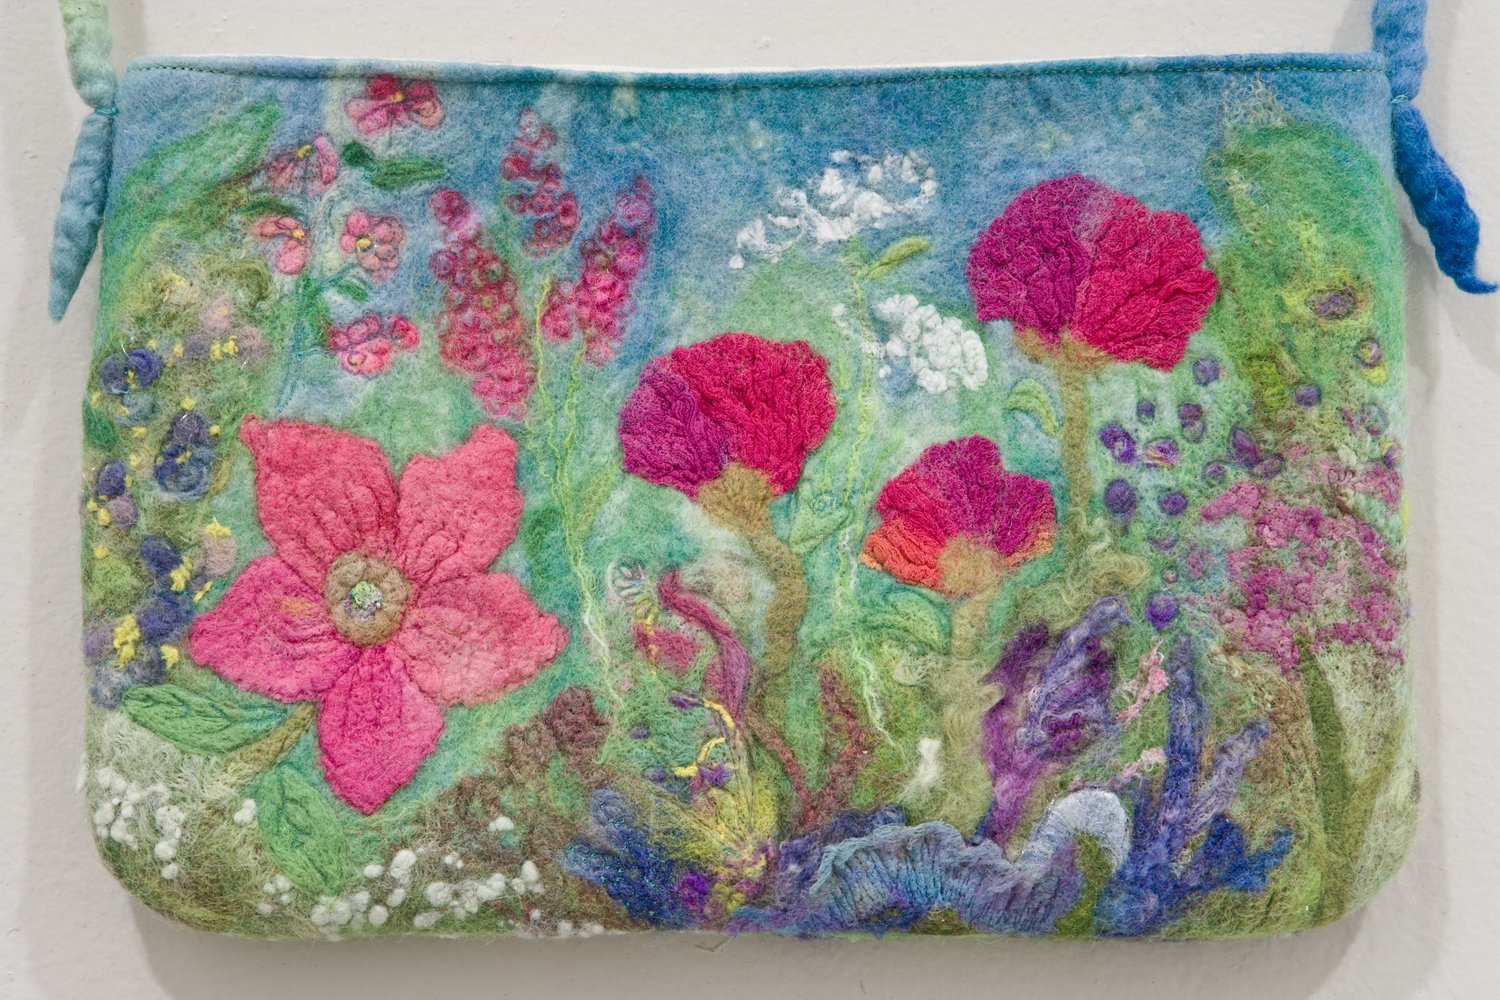 Making More Needle-Felting Magic: New Techniques, Creative Projects by That Patchwork Place